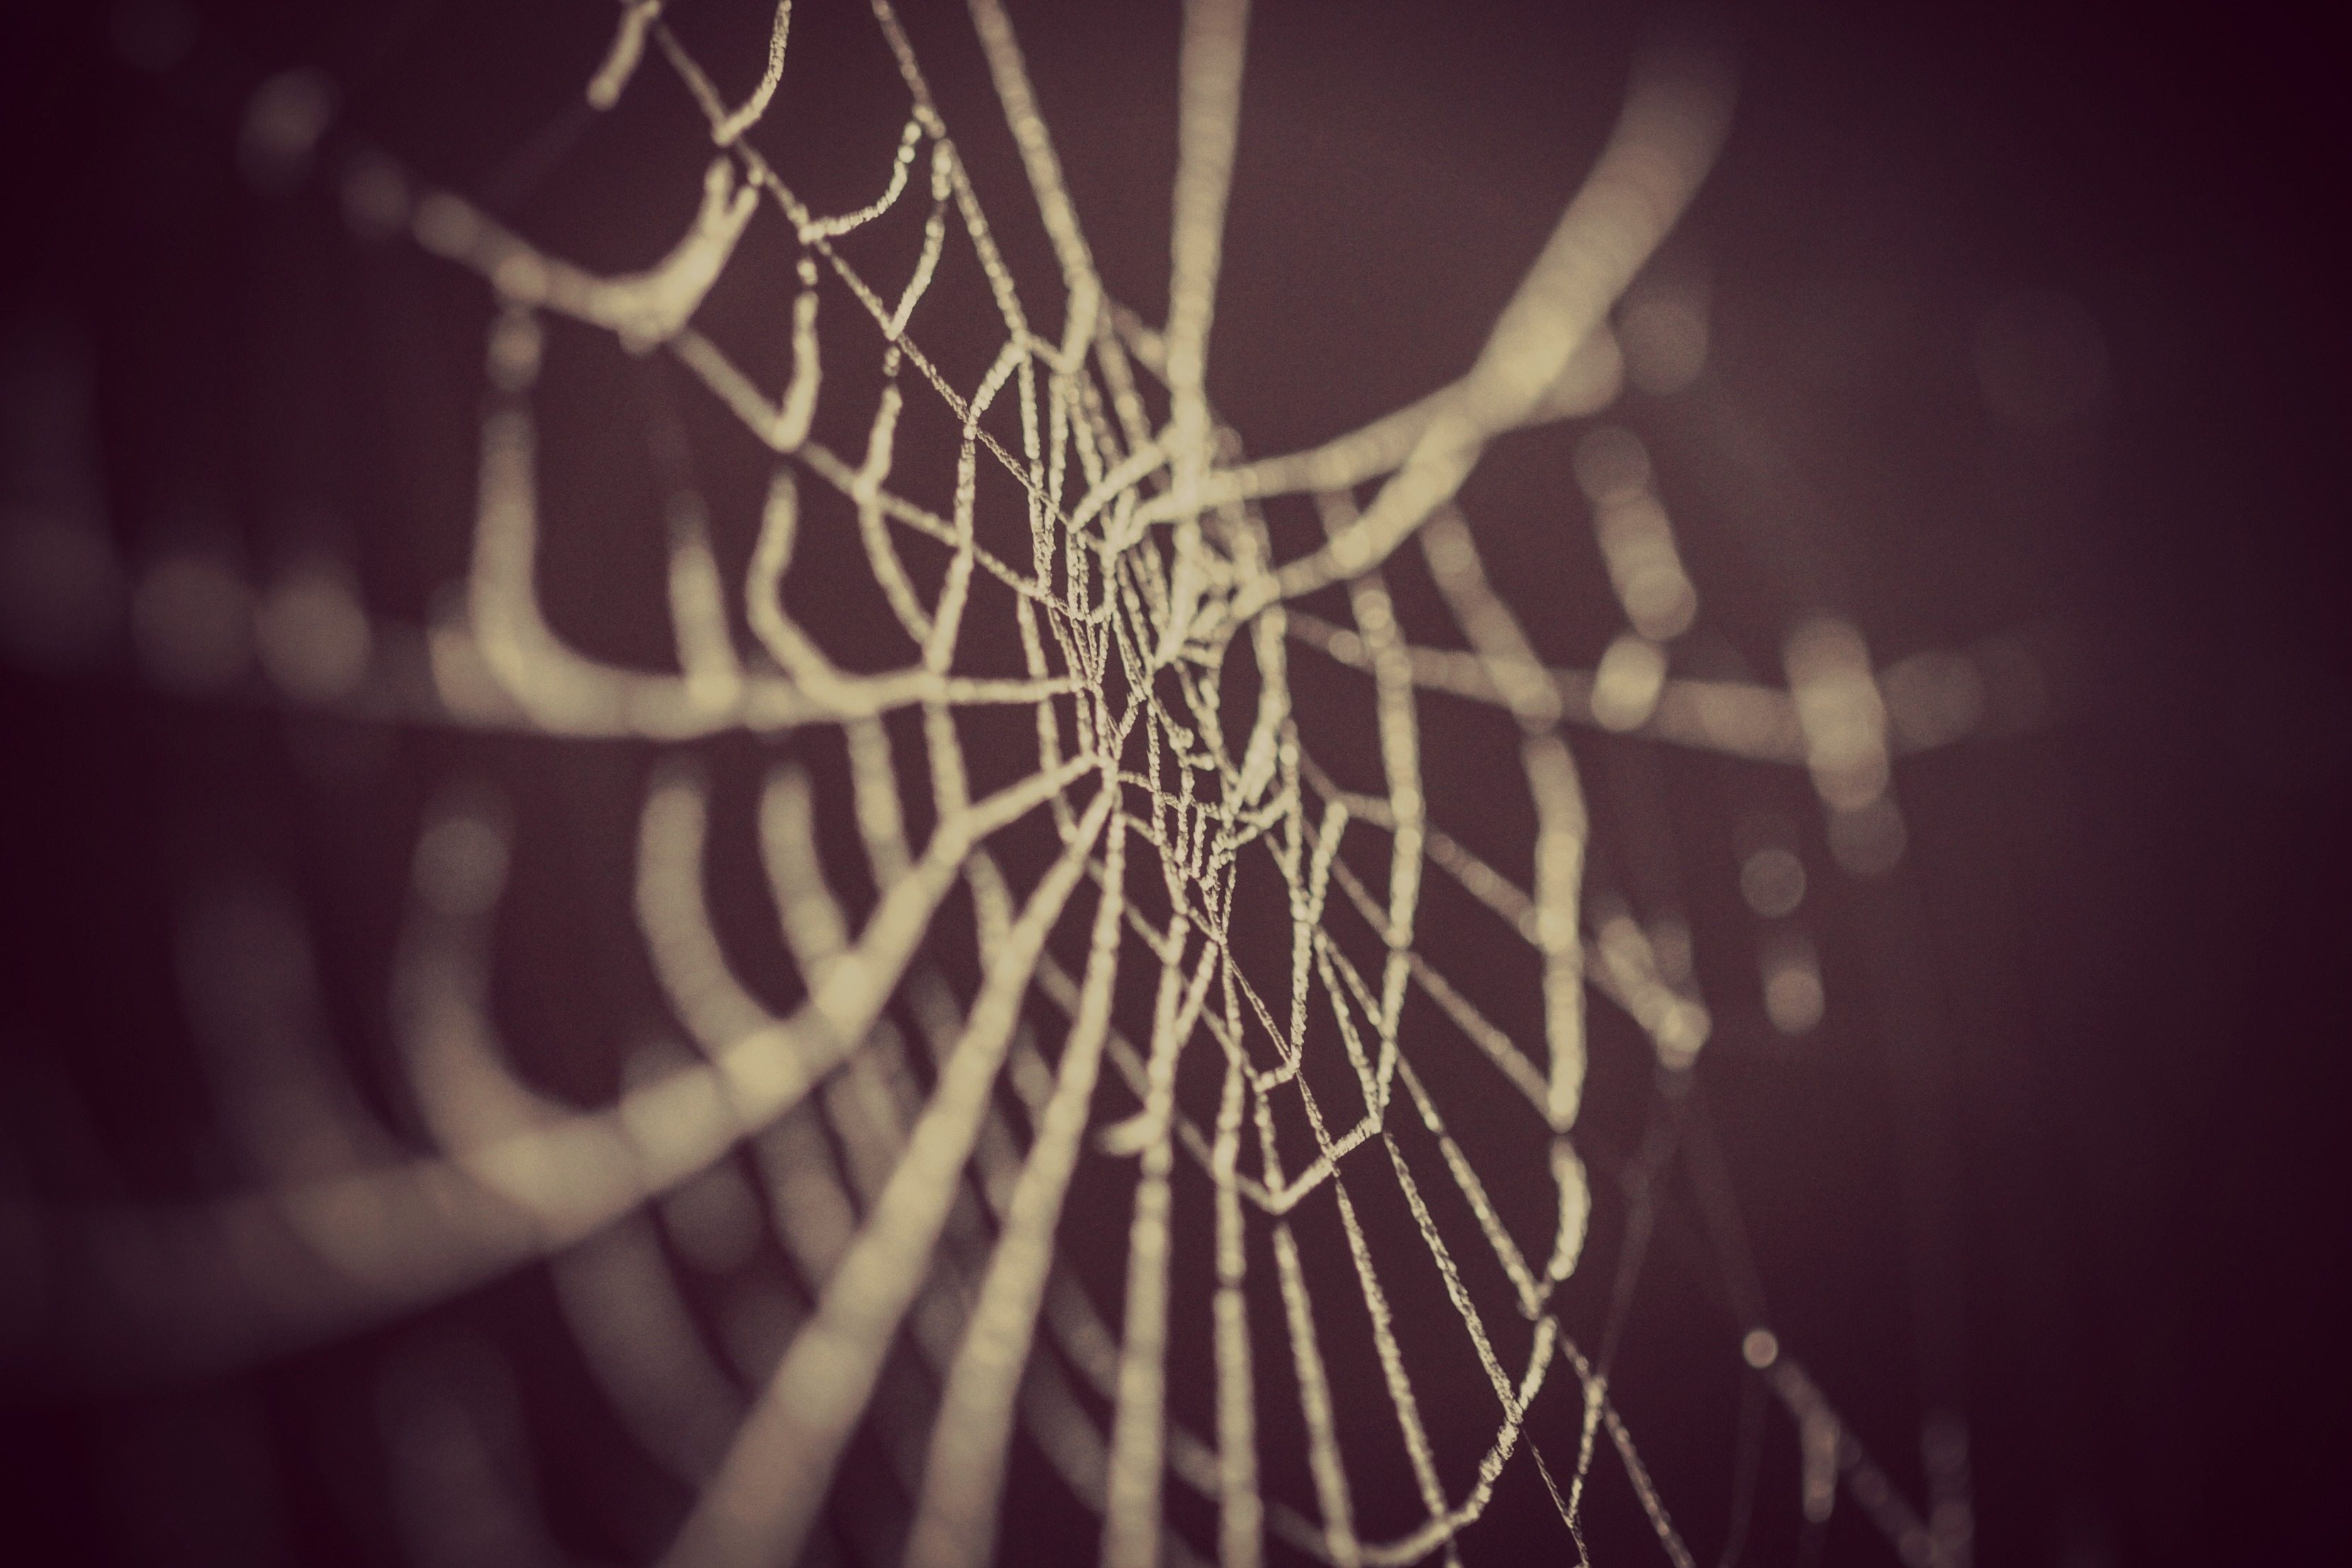 Spiderweb - Network Marketing